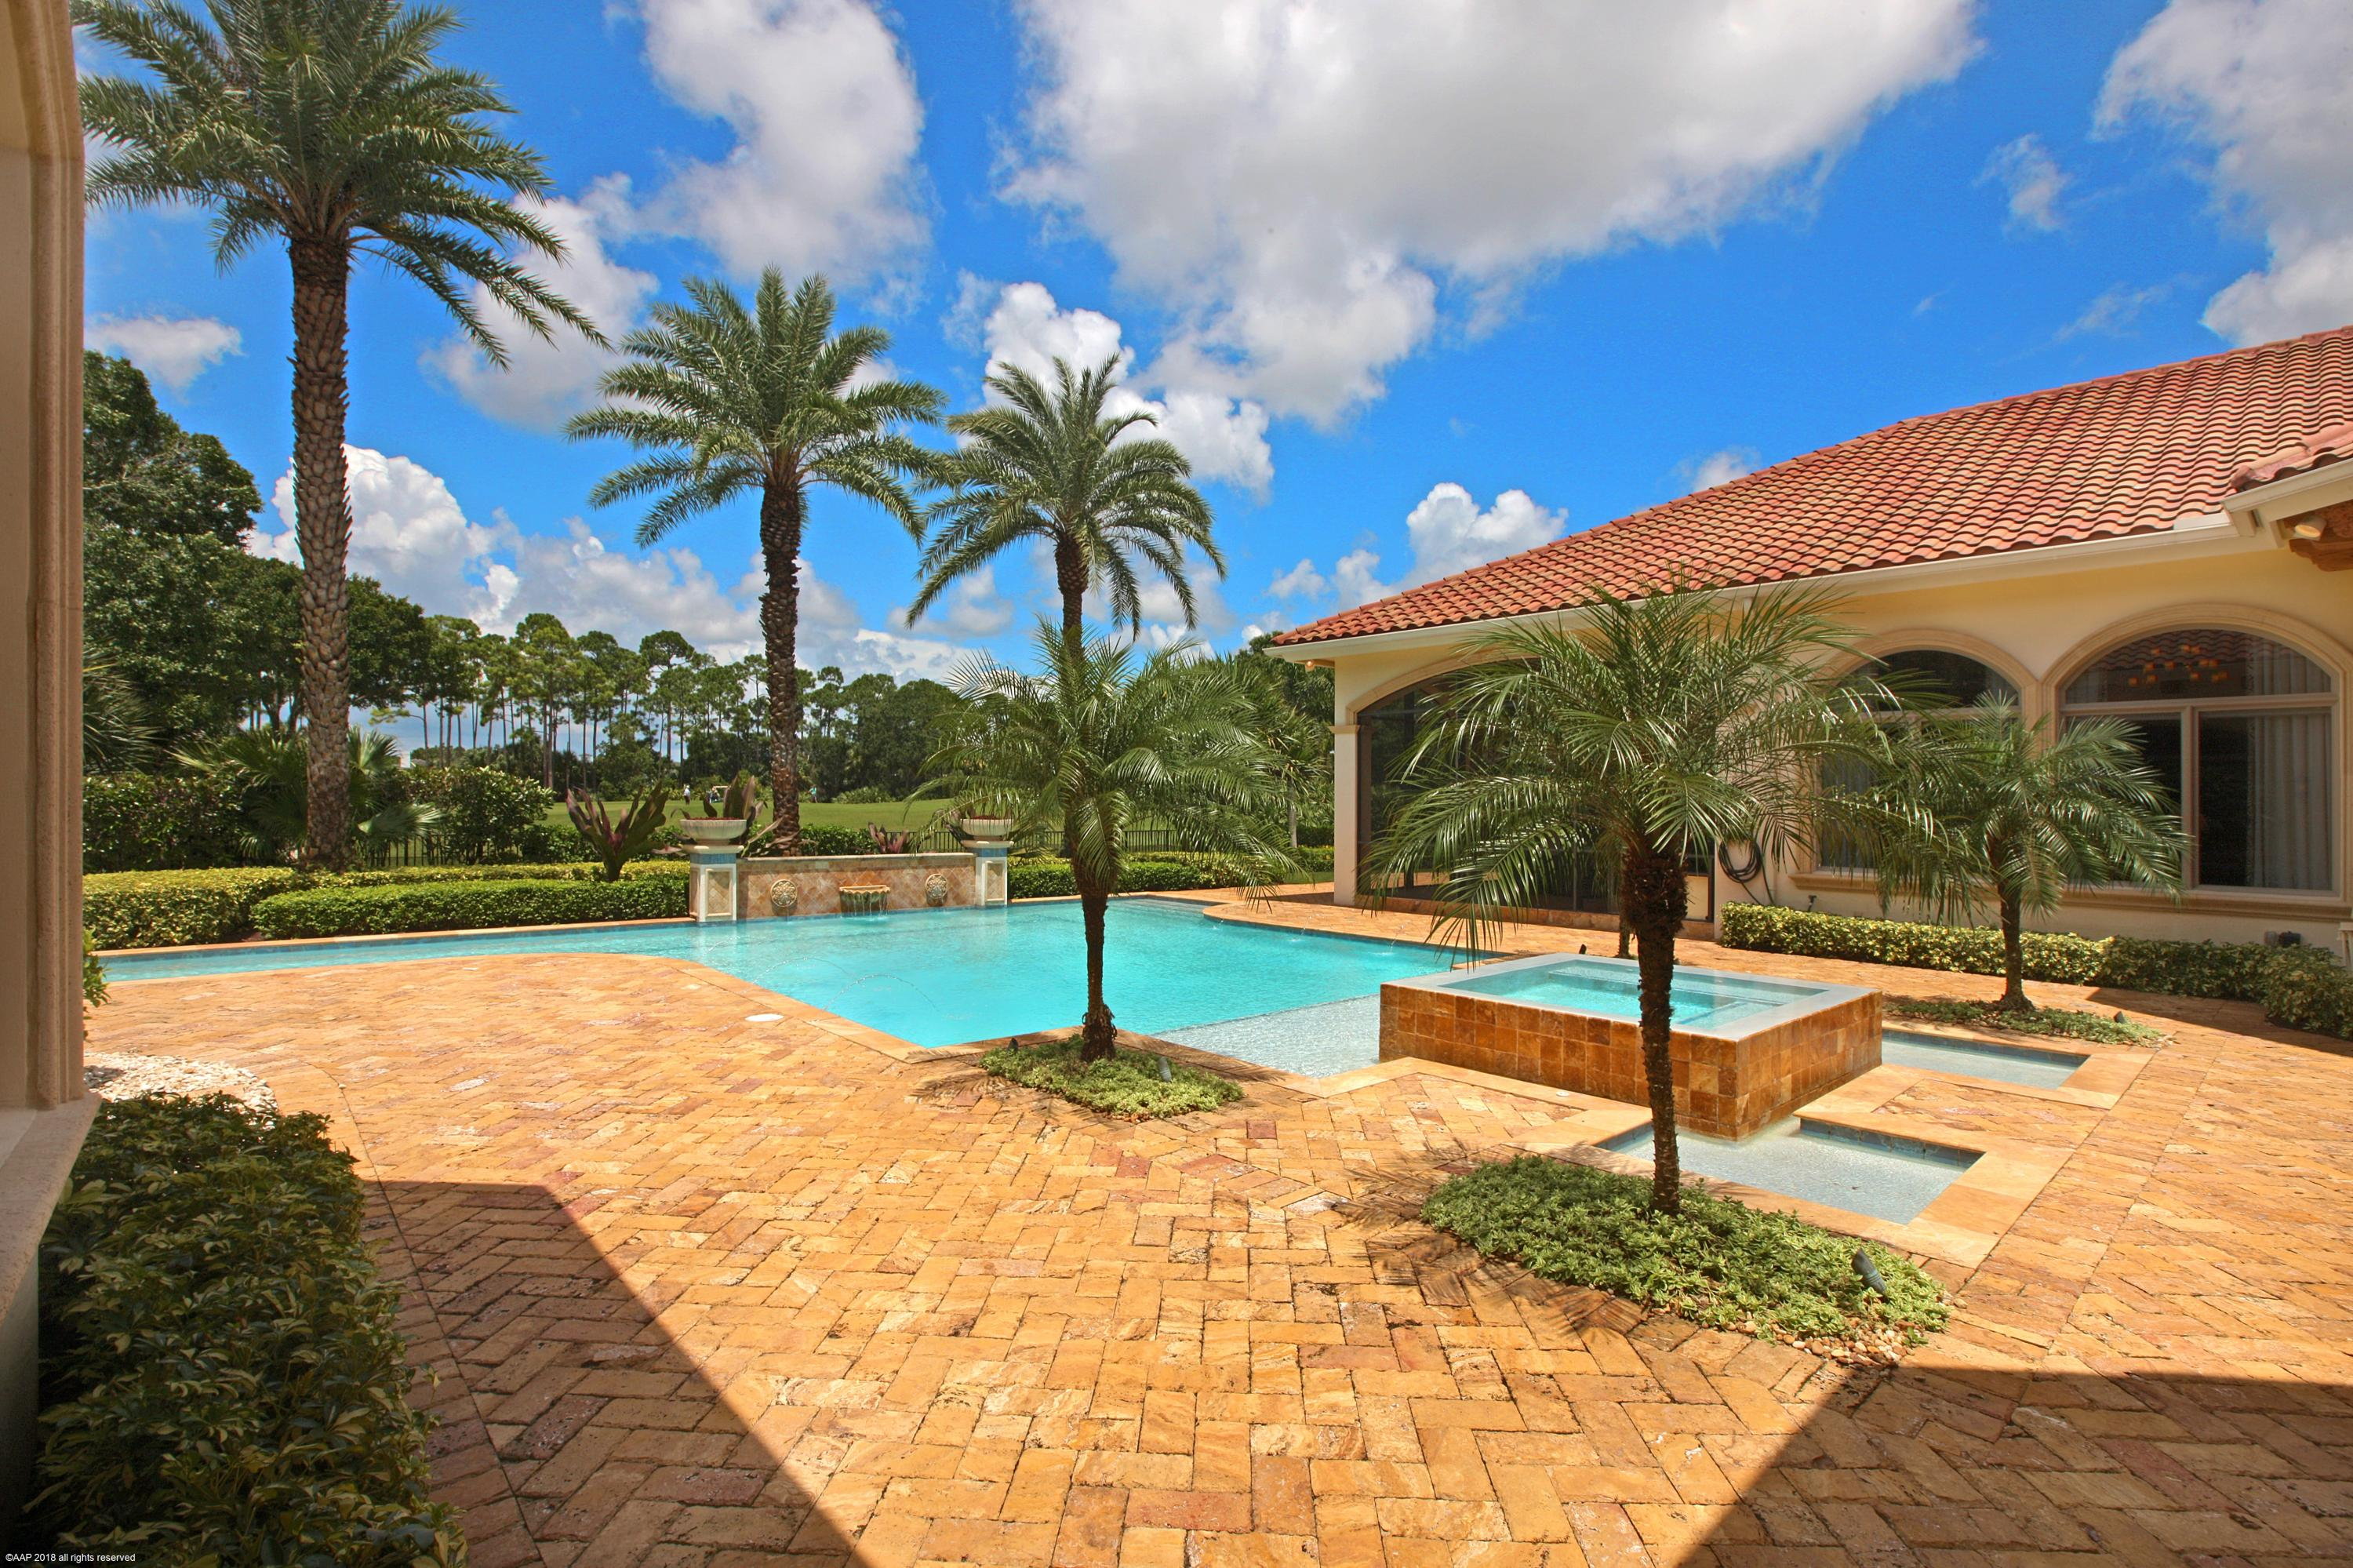 12240 Tillinghast Circle, Palm Beach Gardens, Florida 33418, 5 Bedrooms Bedrooms, ,7.1 BathroomsBathrooms,A,Single family,Tillinghast,RX-10452272